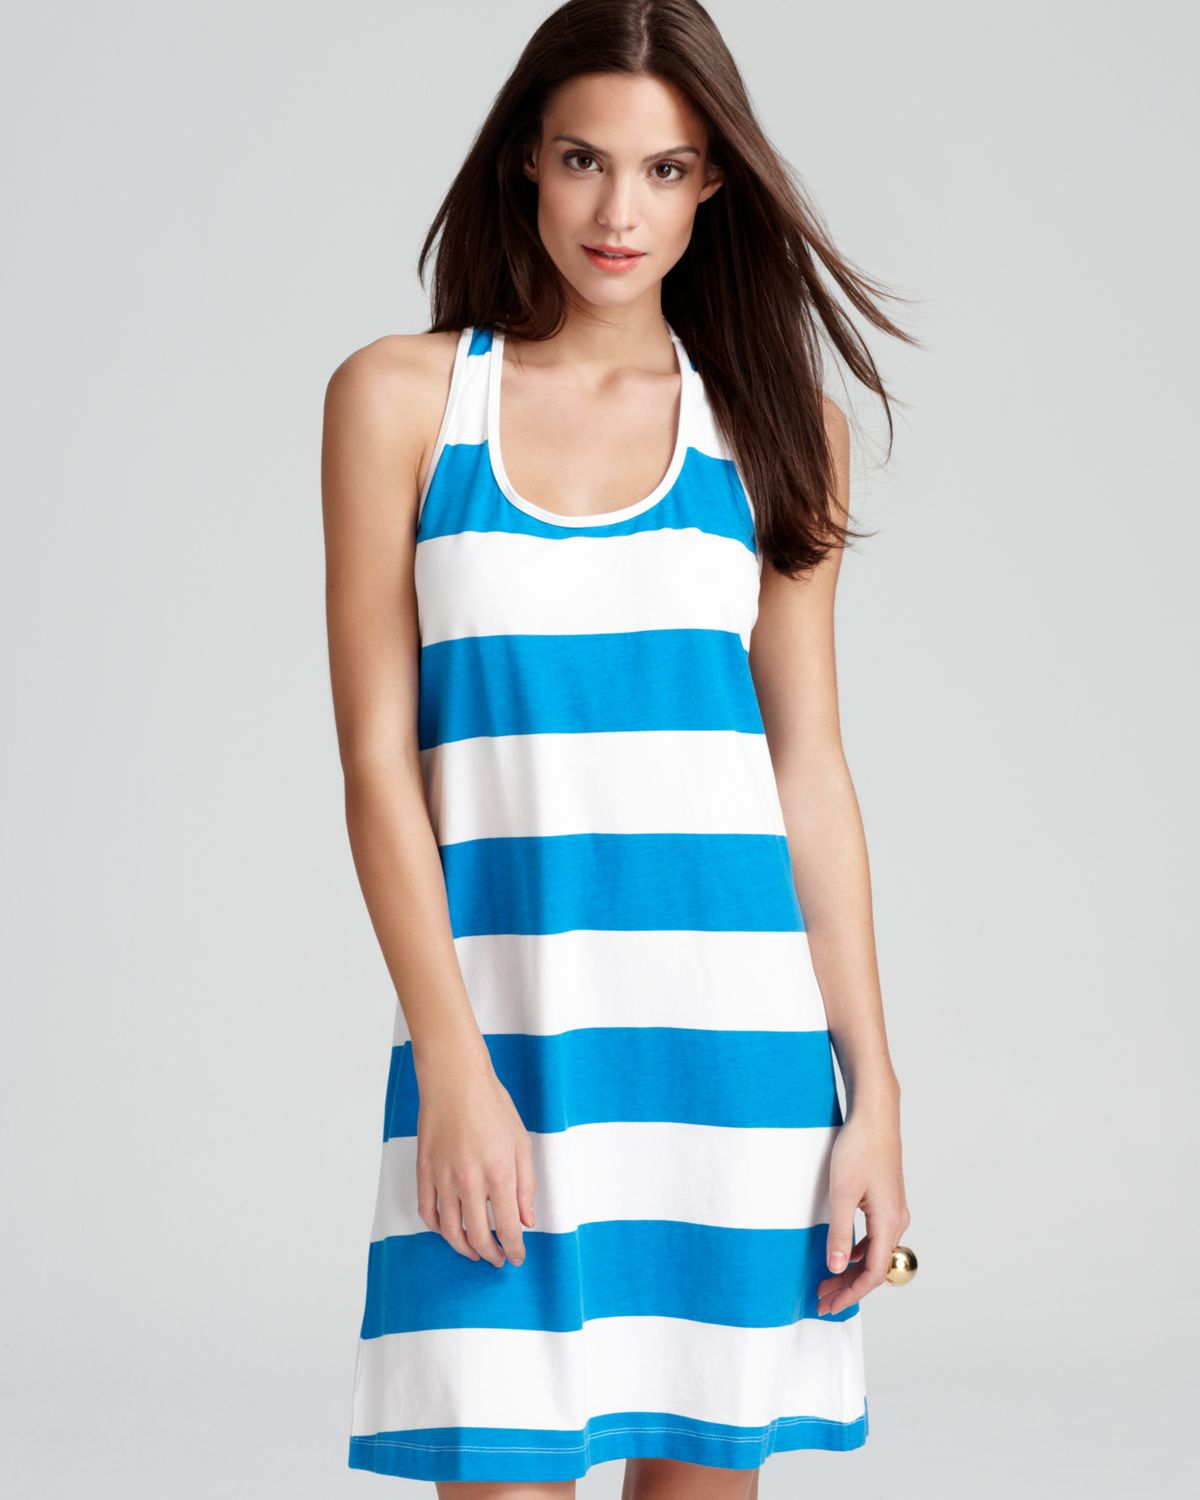 43b0820c3 Tommy Bahama Big Stripe Short Tank Swimsuit Cover Up Dress in Blue ...